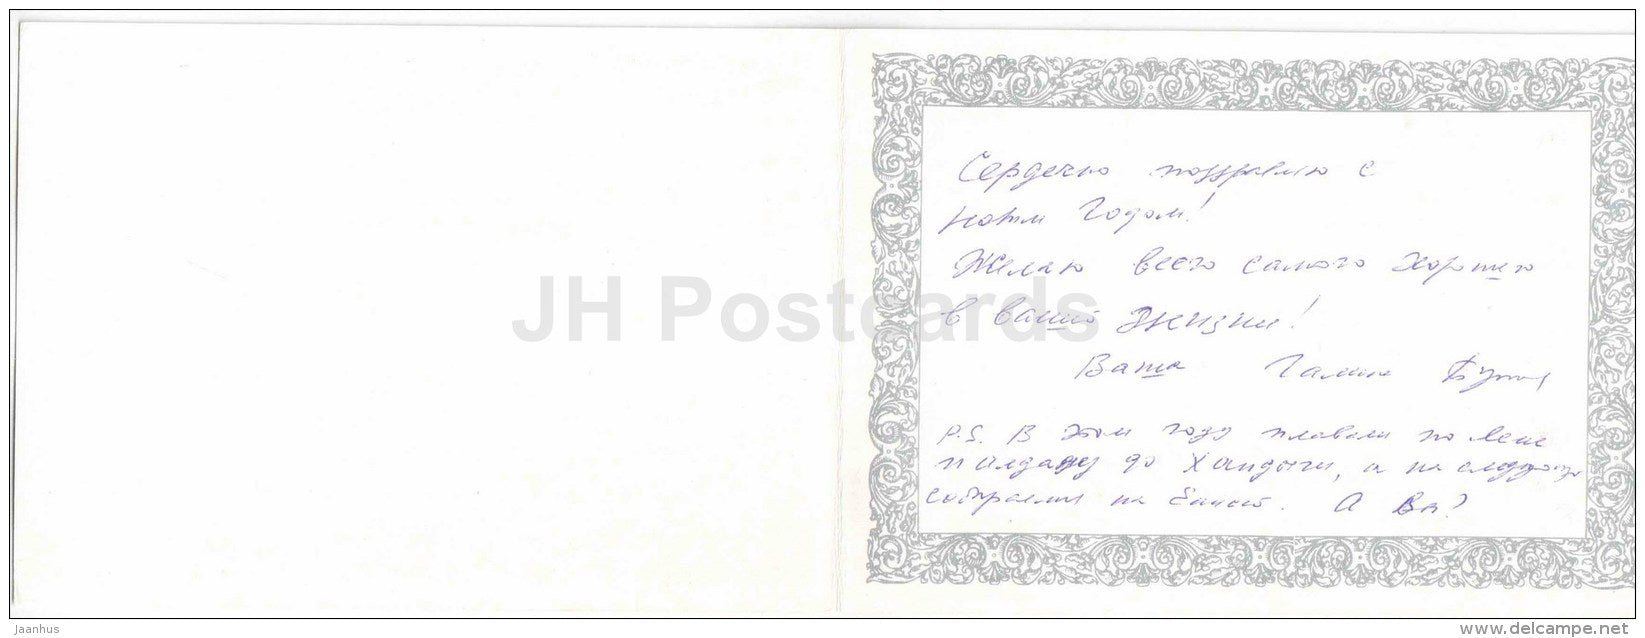 New Year greeting card by M. Zanegin - library - 1976 - Russia USSR - used - JH Postcards